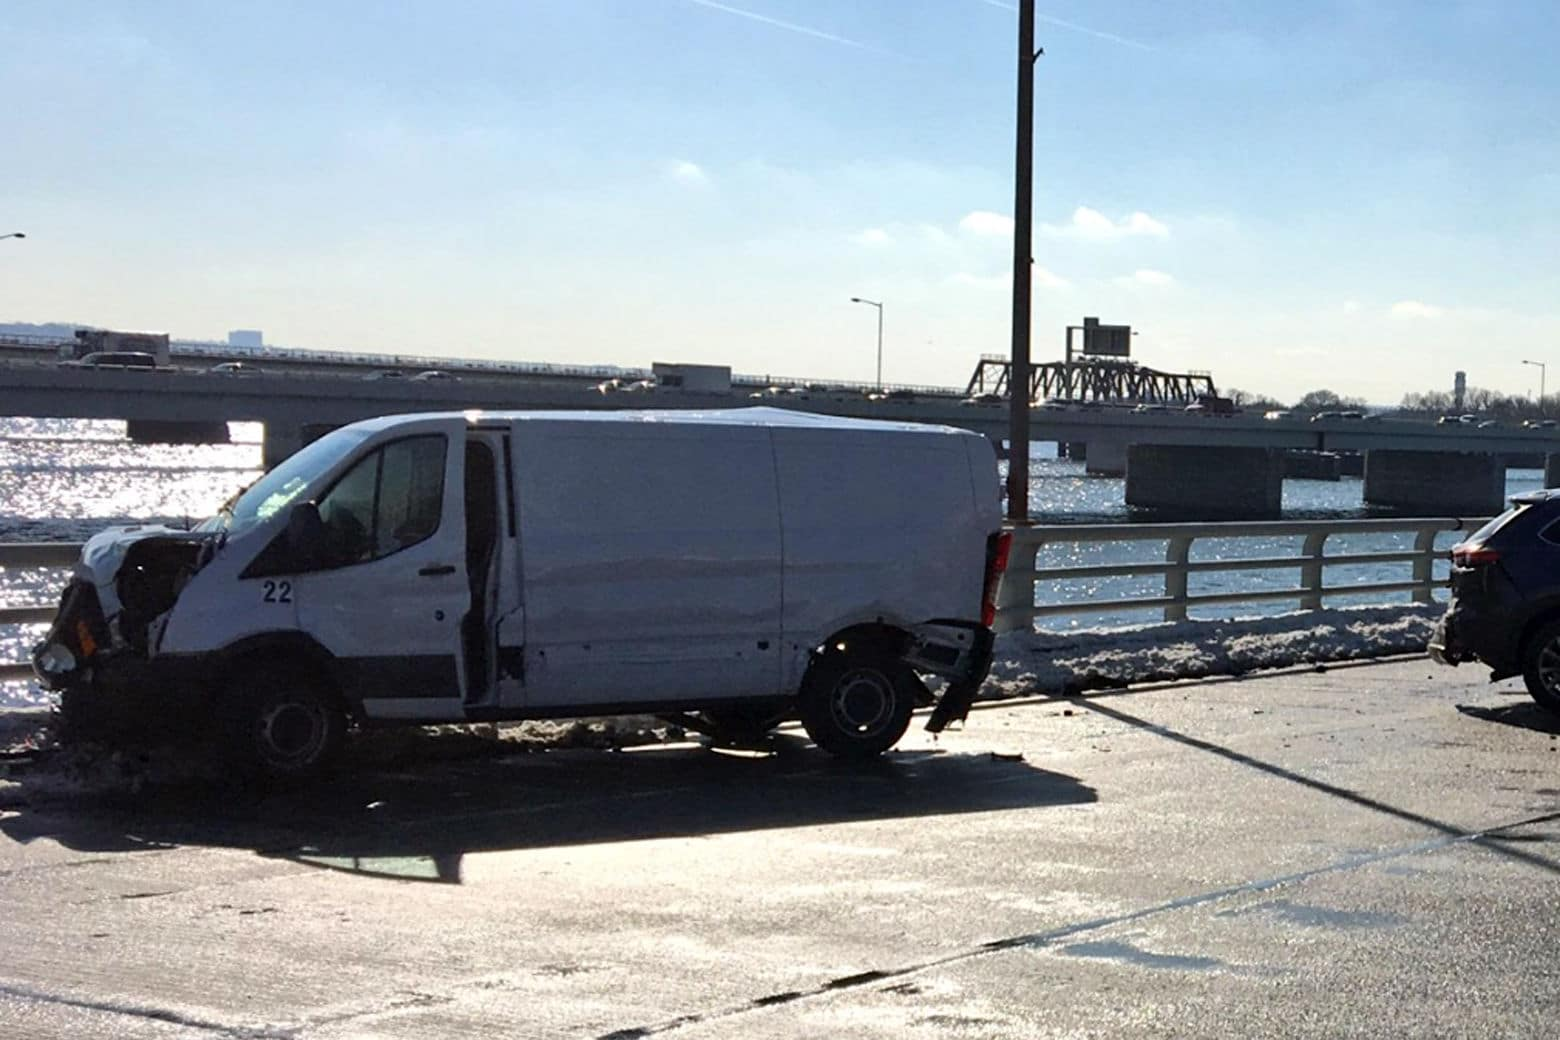 A van involved in the 14th Street Bridge crash Tuesday. (Authorities on the scene of a crash on the 14th Street Bridge on Tuesday. (Courtesy D.C. Fire and EMS))